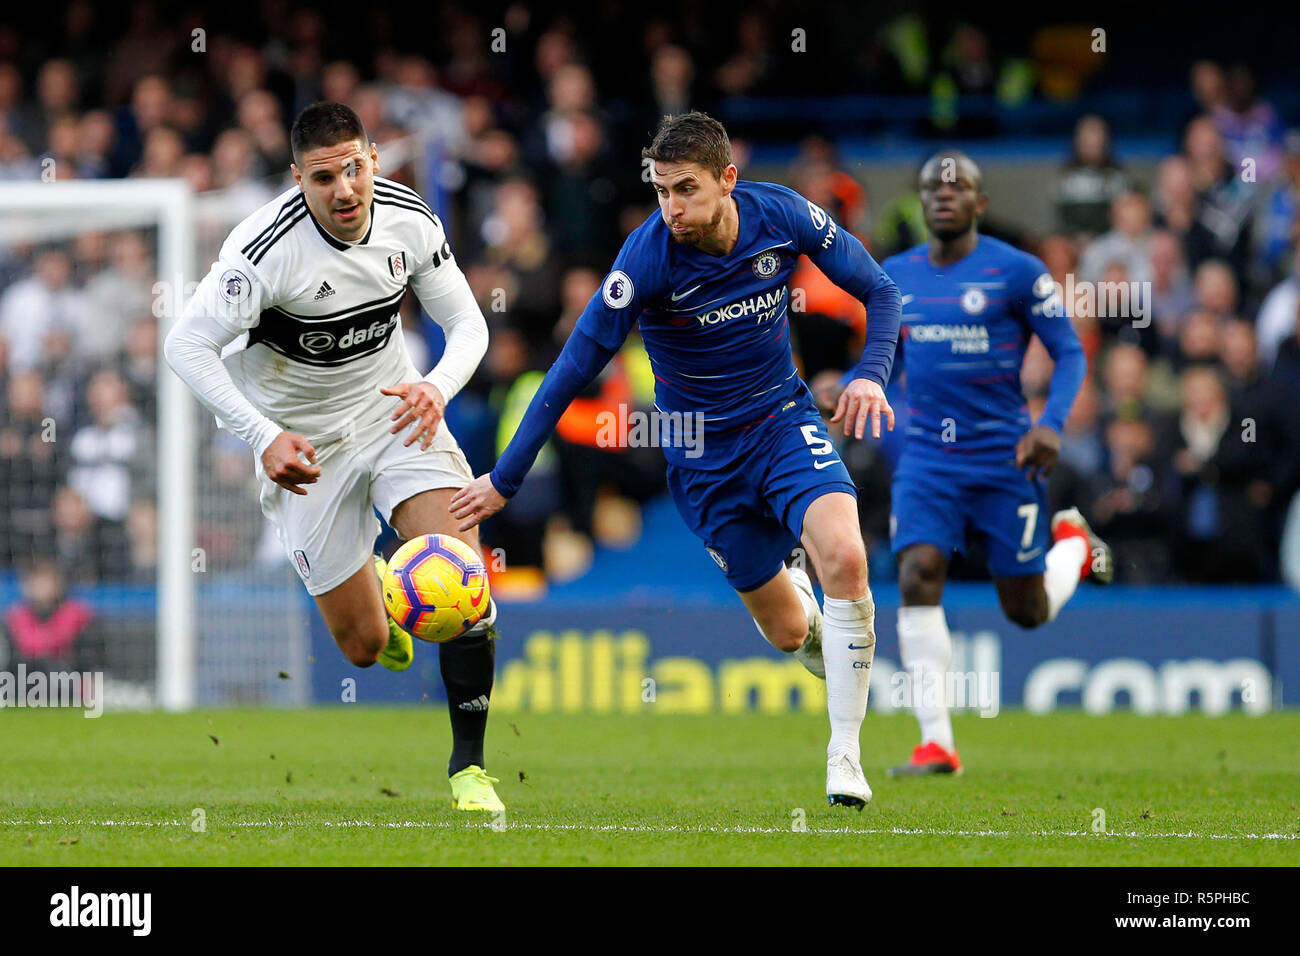 London Uk 2nd Dec 2018 Aleksandar Mitrovi Of Fulham And Jorginho Of Chelsea During The Premier League Match Between Chelsea And Fulham At Stamford Bridge London England On 2 December 2018 Photo